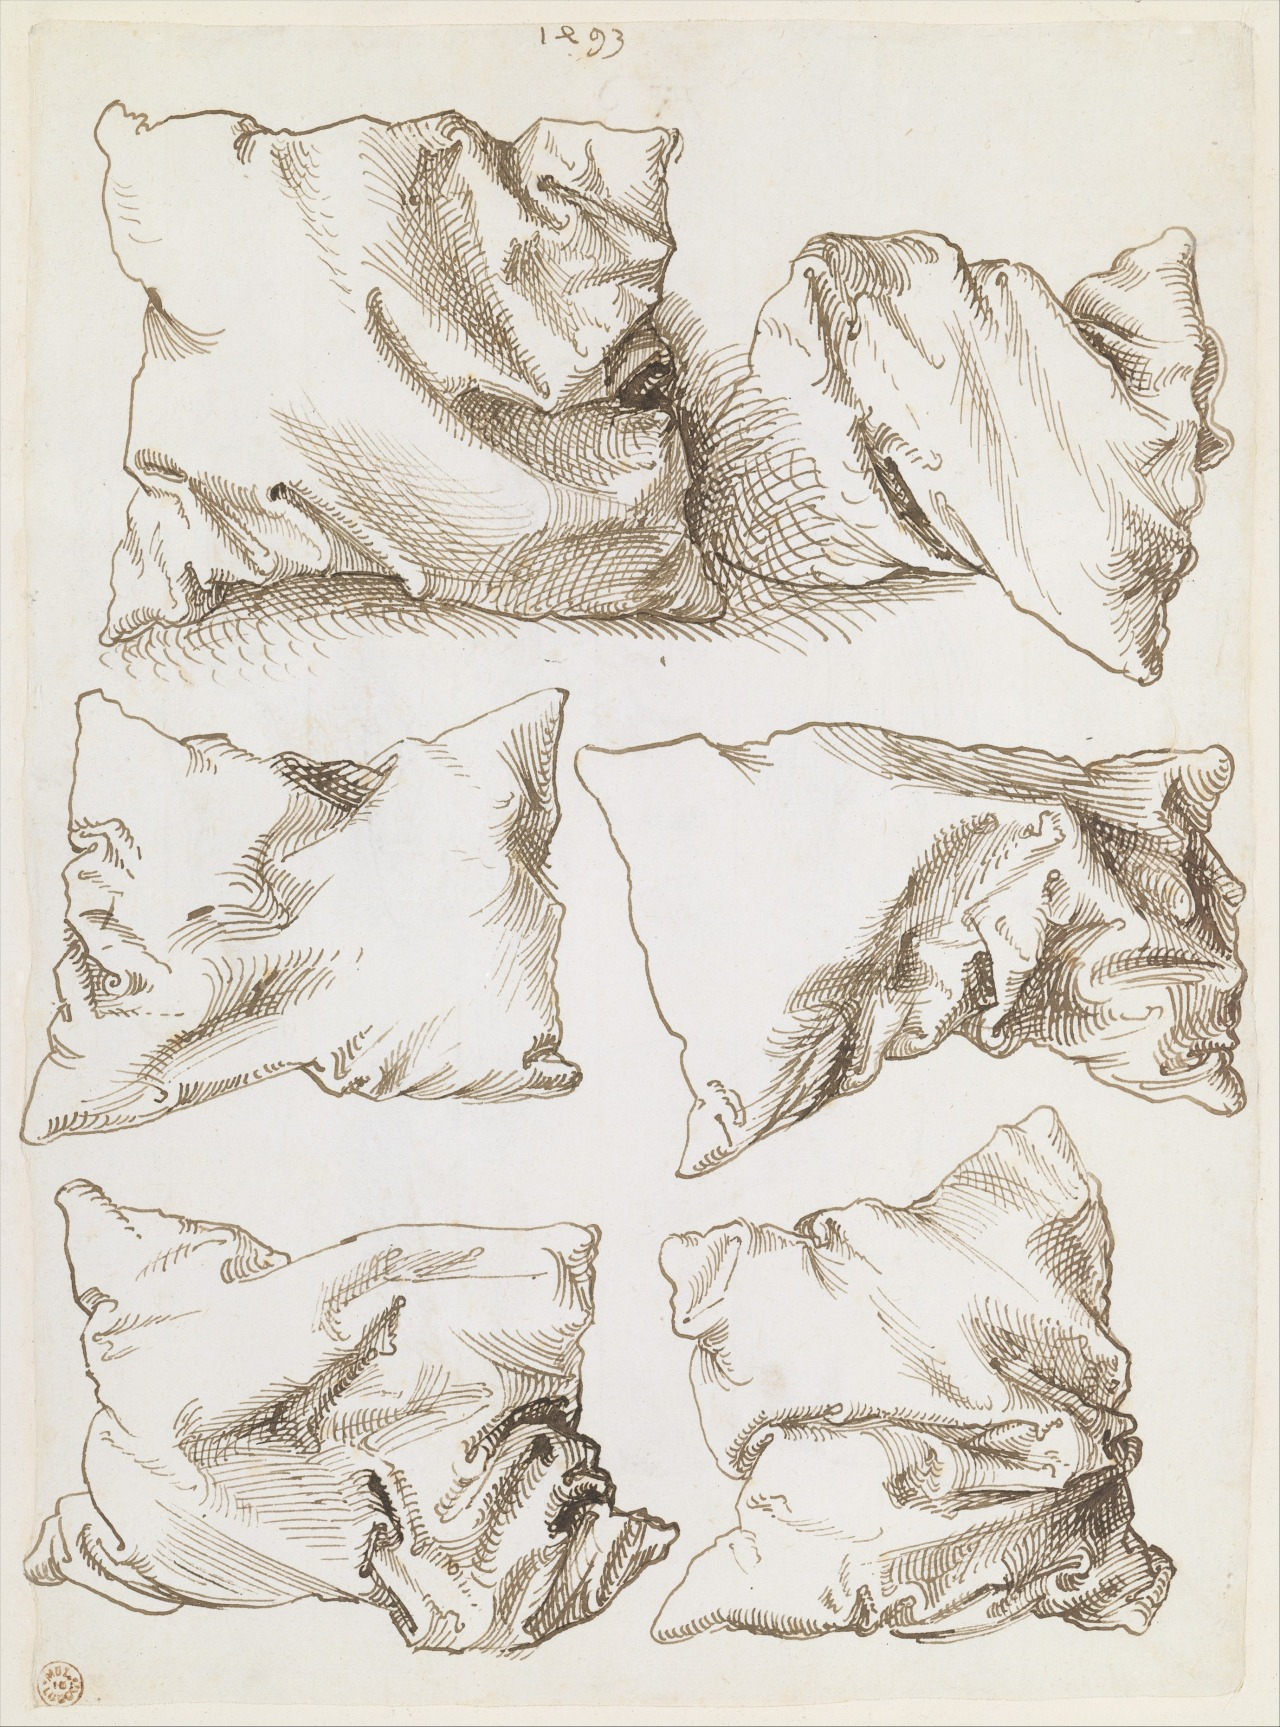 Albrecht Dürer, six pillows (verso), pen and brown ink, 1493. The Metropolitan Museum of Art.